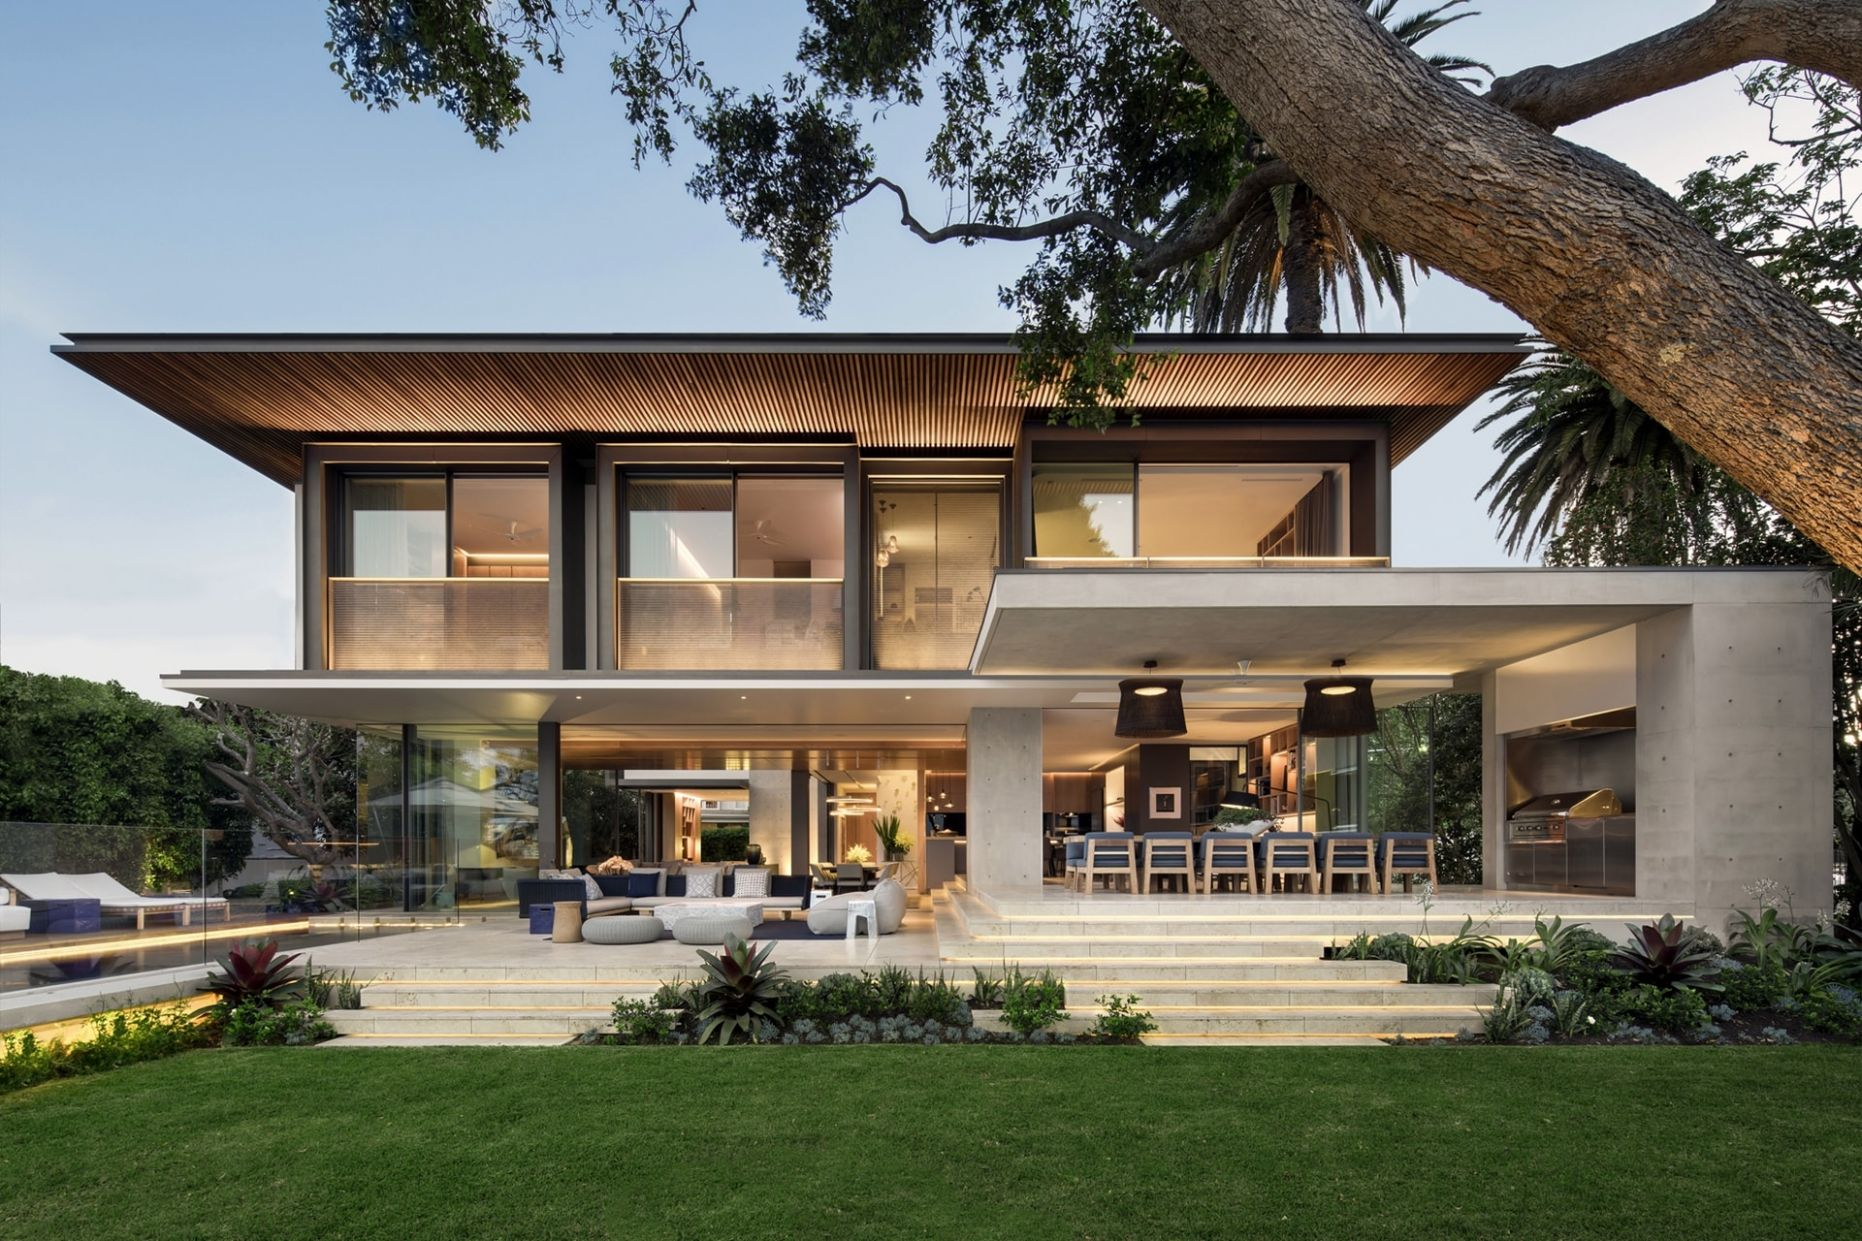 Amazing house design with 9+ ideas for inspiration - Architecture ..